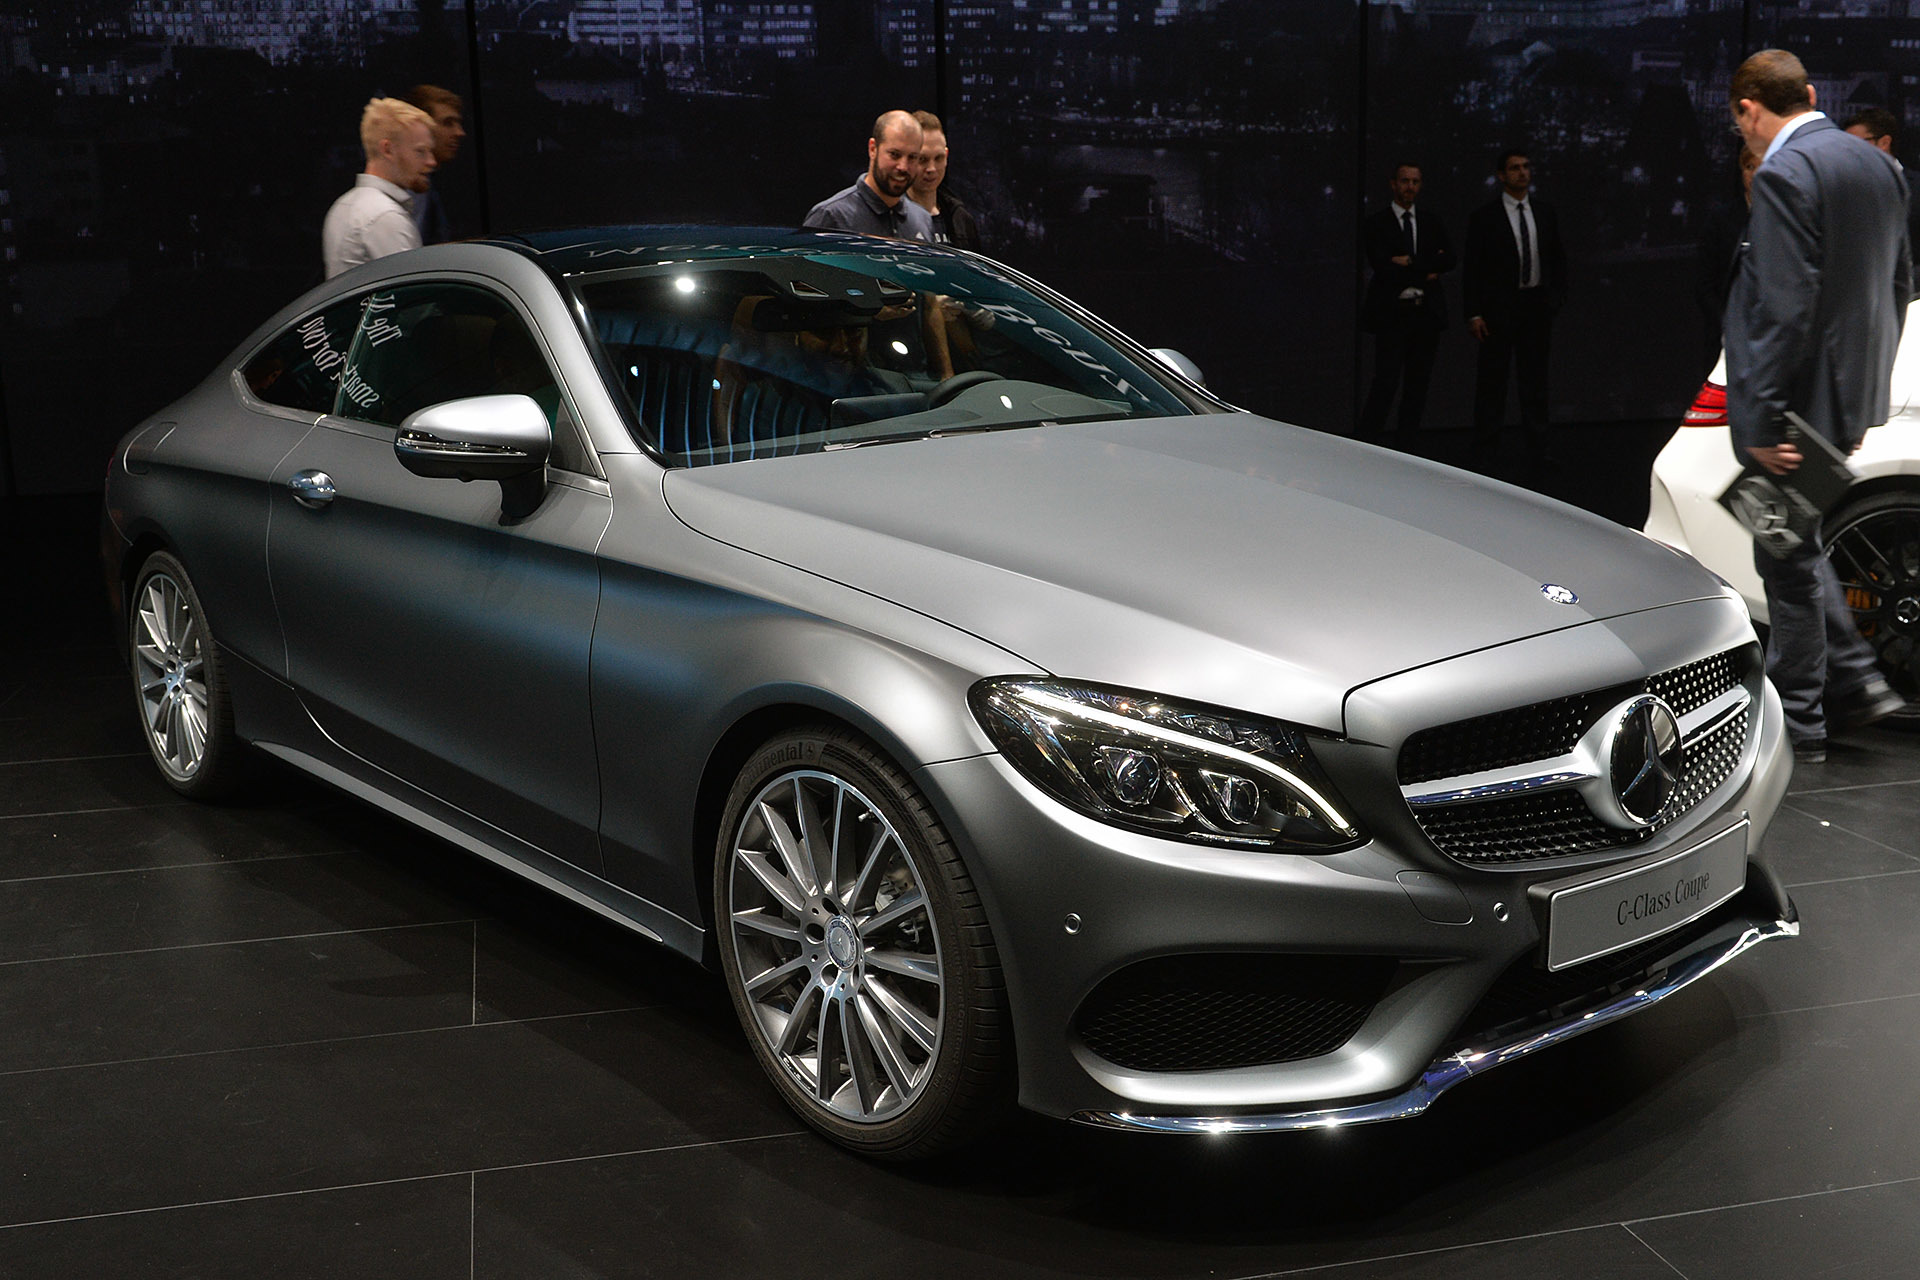 2016 Mercedes Benz C Cl Coupe Frankfurt 2017 Photo Gallery Autoblog